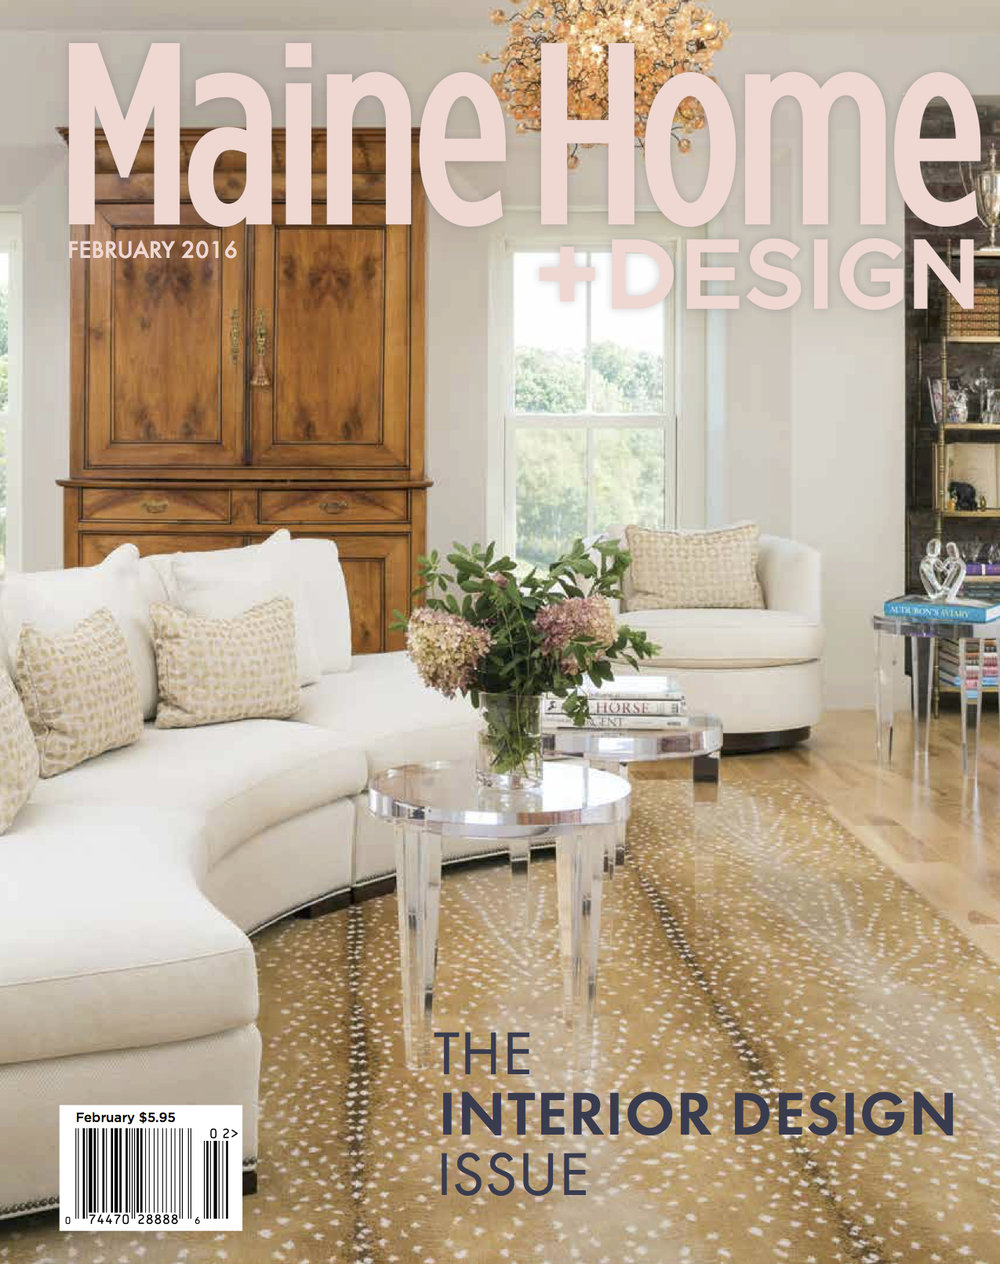 MHD_FEB_Interior Design Listing_Ari COVER.jpg